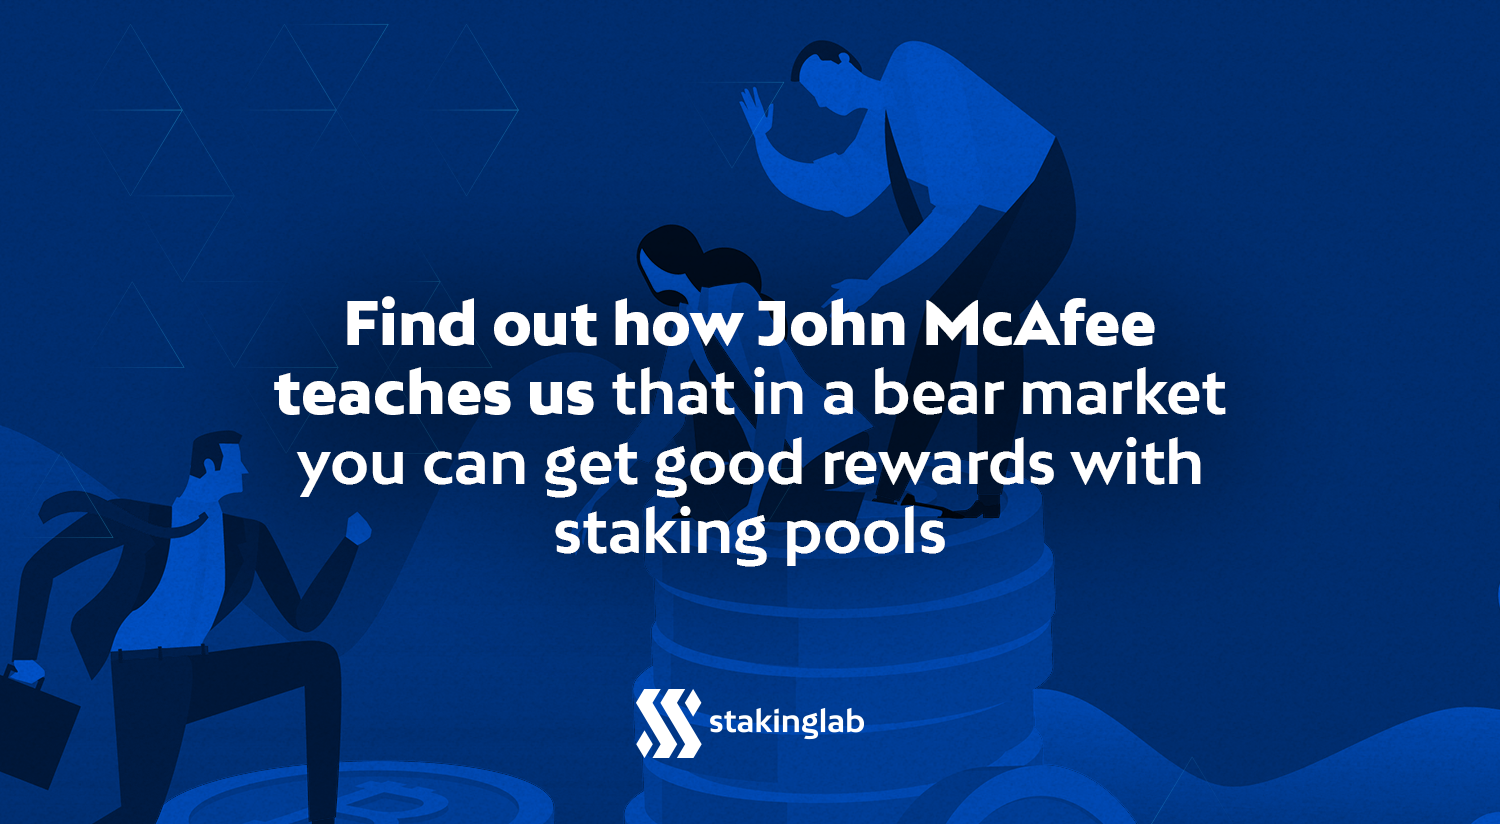 Find out how John McAfee teaches us, that in a bear market you can get good rewards with staking pools